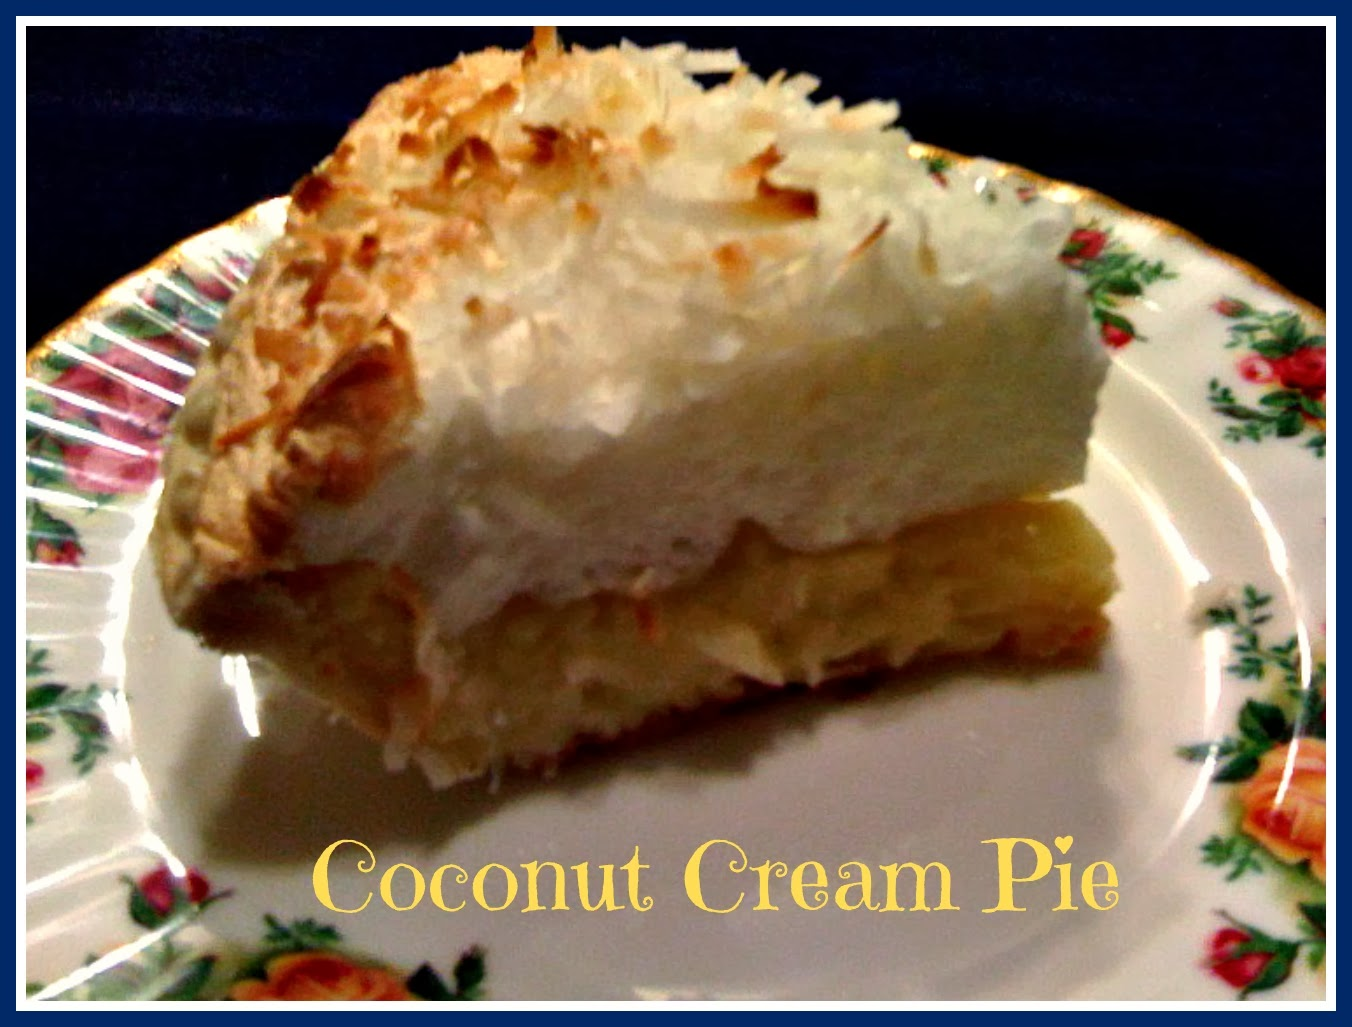 Old fashioned coconut cream pie from scratch Ultimate Coconut Cream Pie - Spend With Pennies